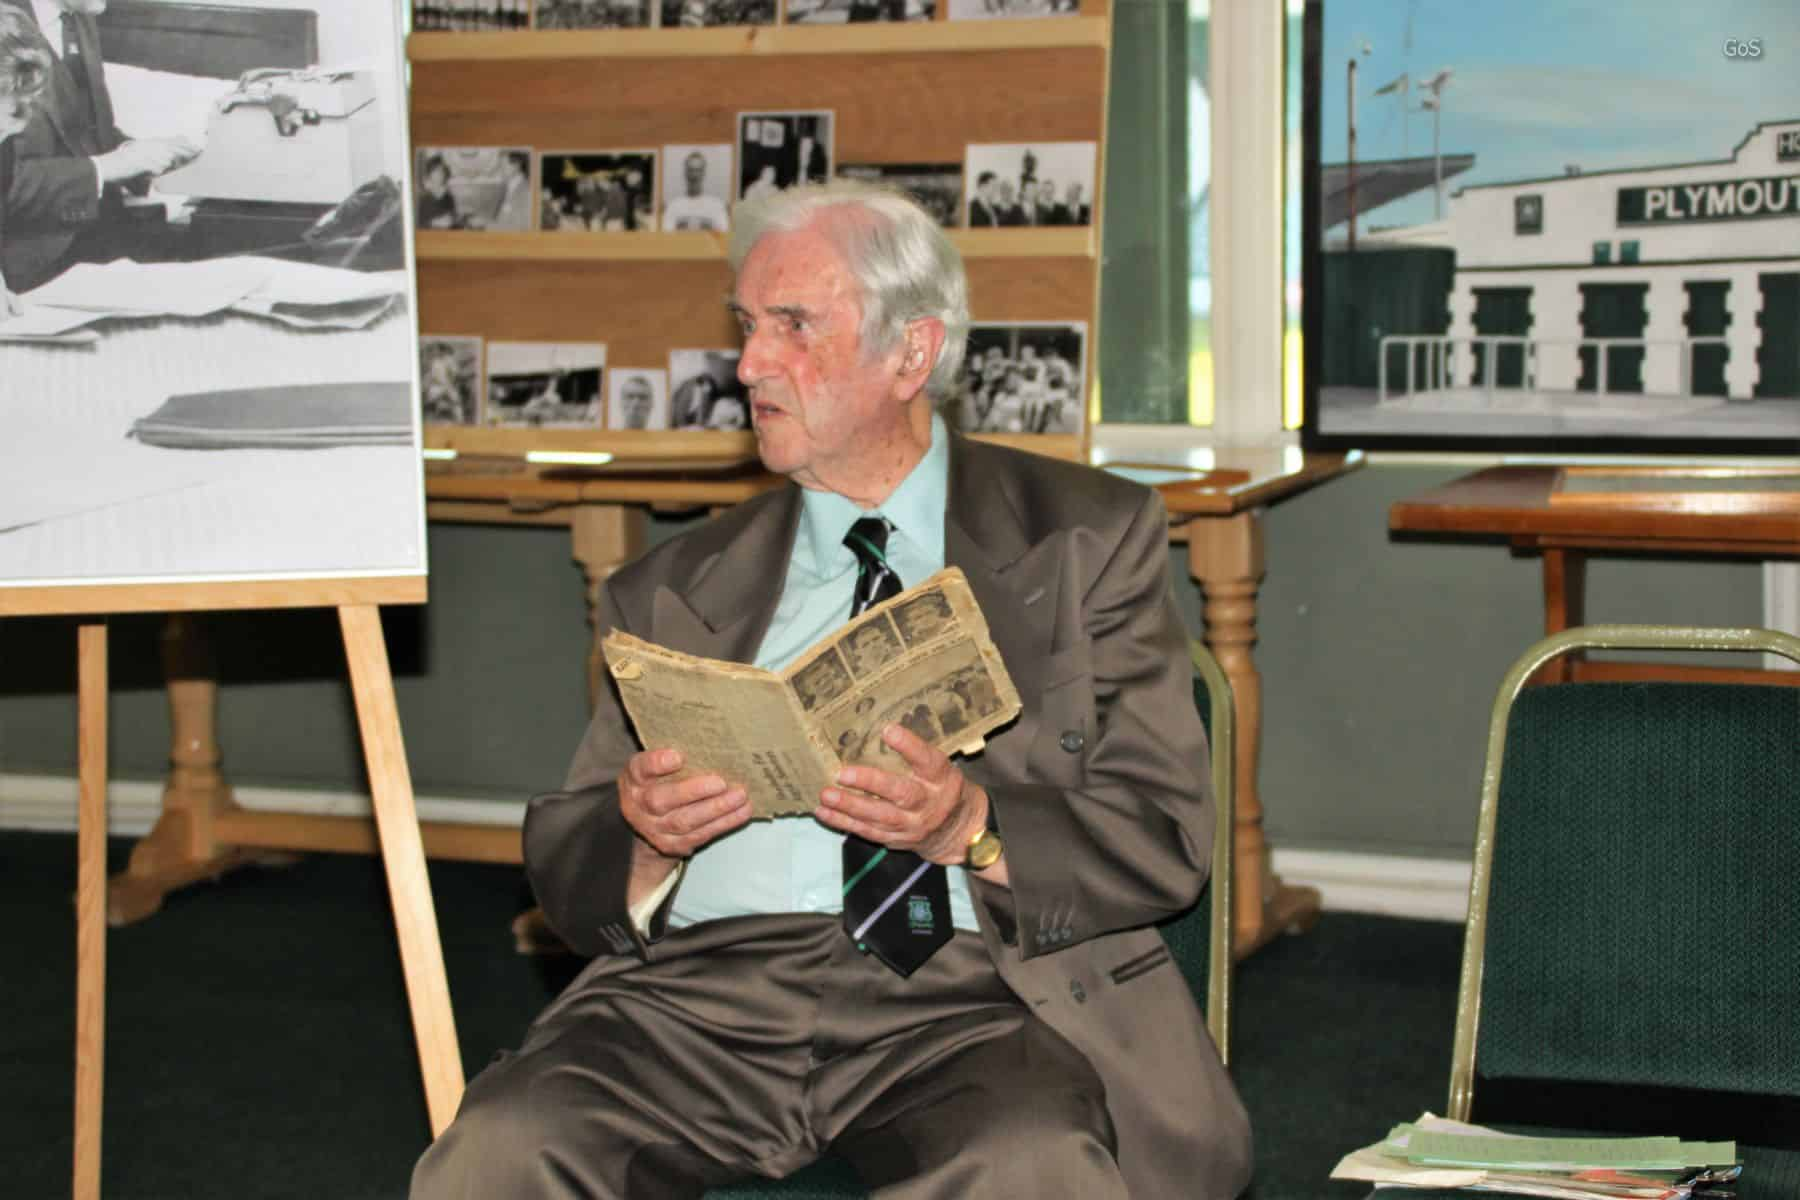 Special guest Graham Little told some wonderful stories from his time as club secretary